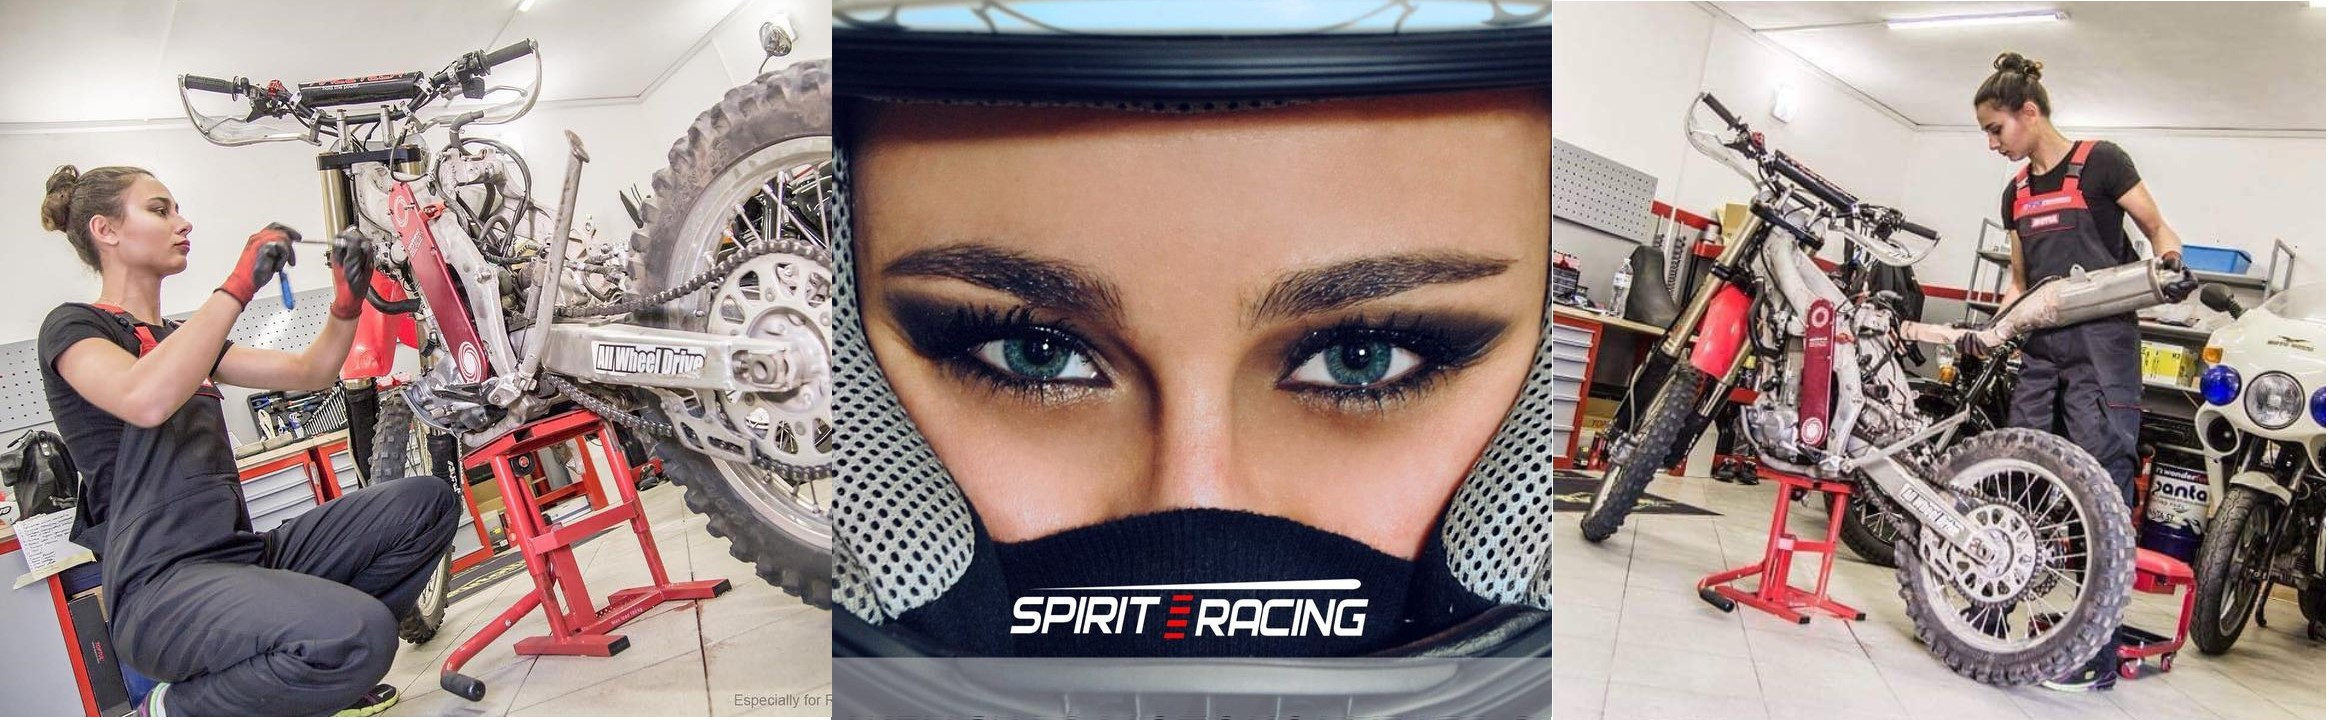 Spirit Racing Shop